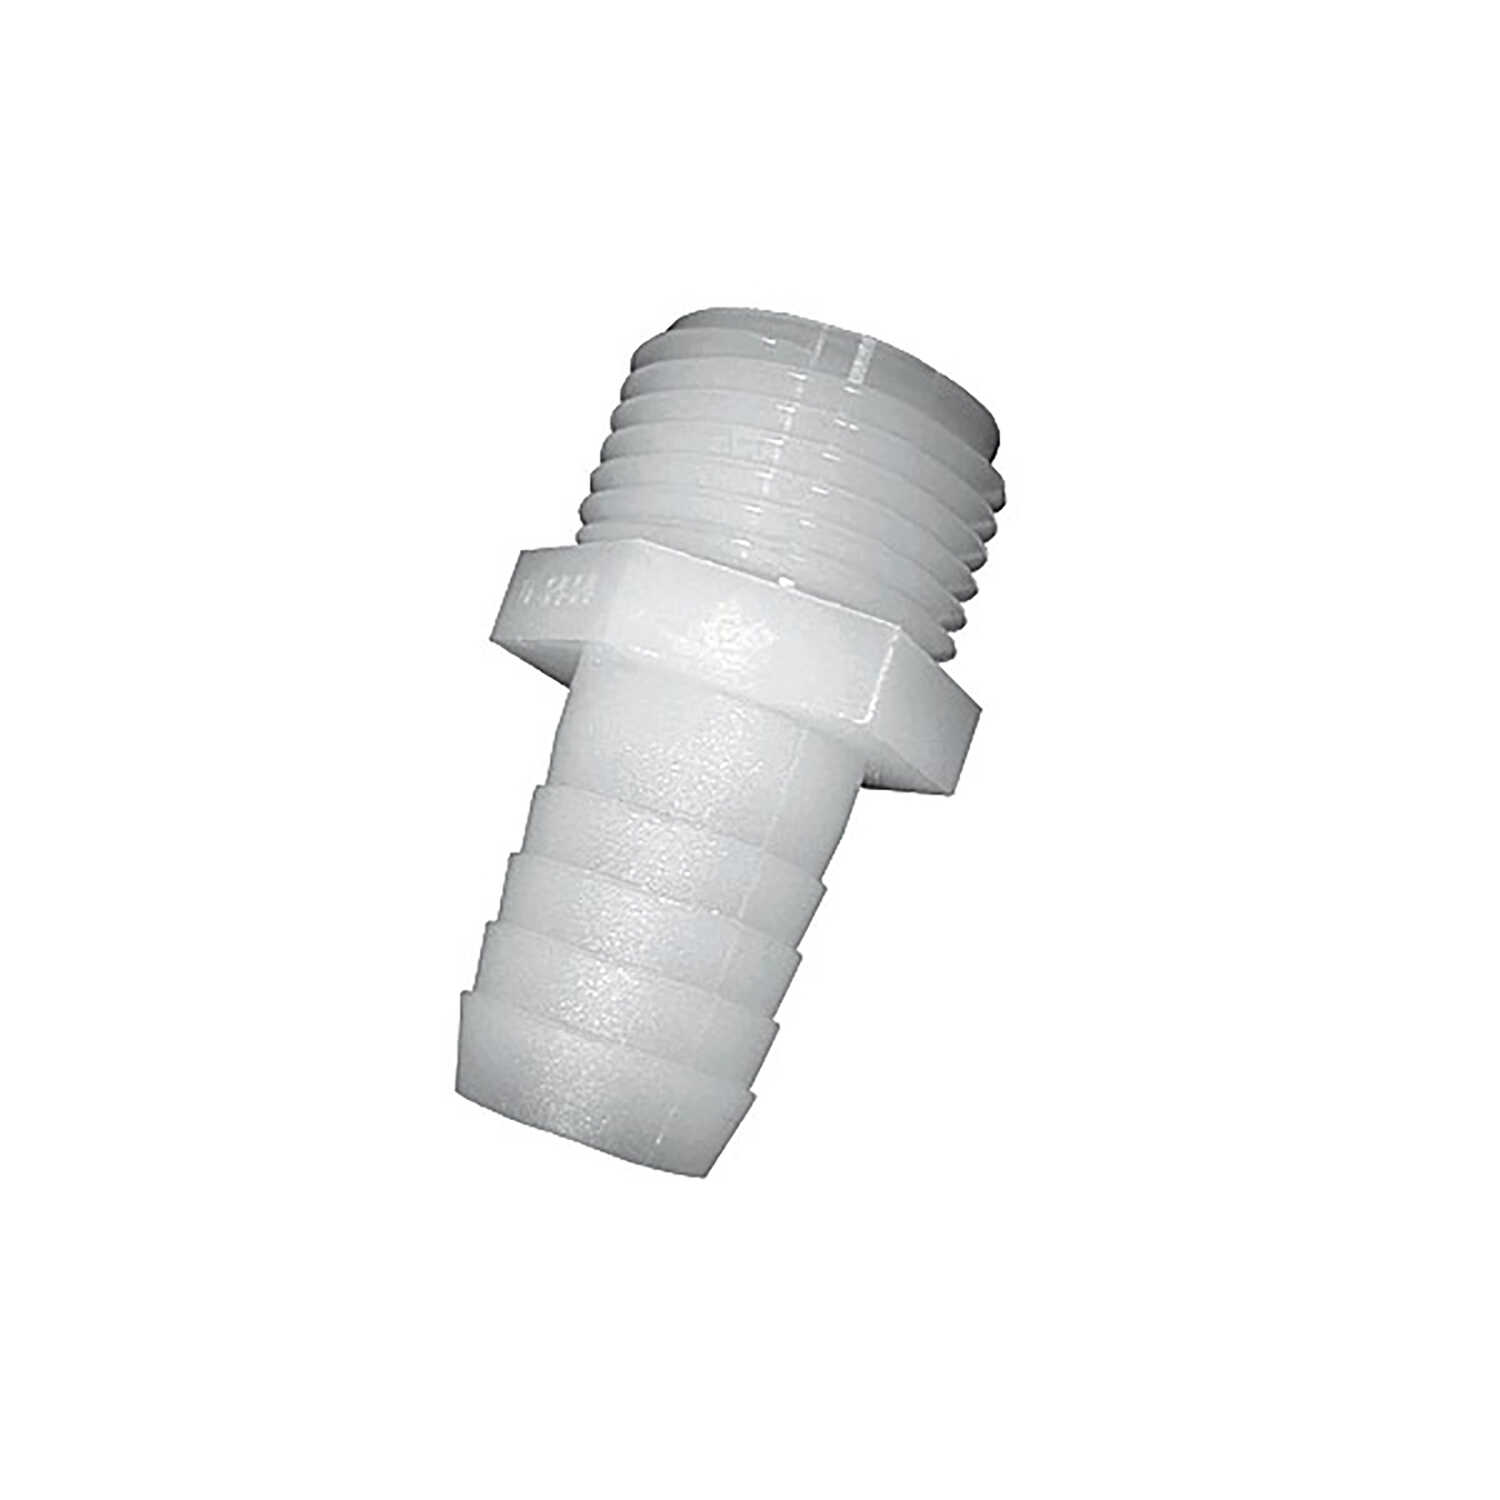 Green Leaf  3/4 in. MGHT   x 5/8 in. Dia. Barb  Nylon  Adapter